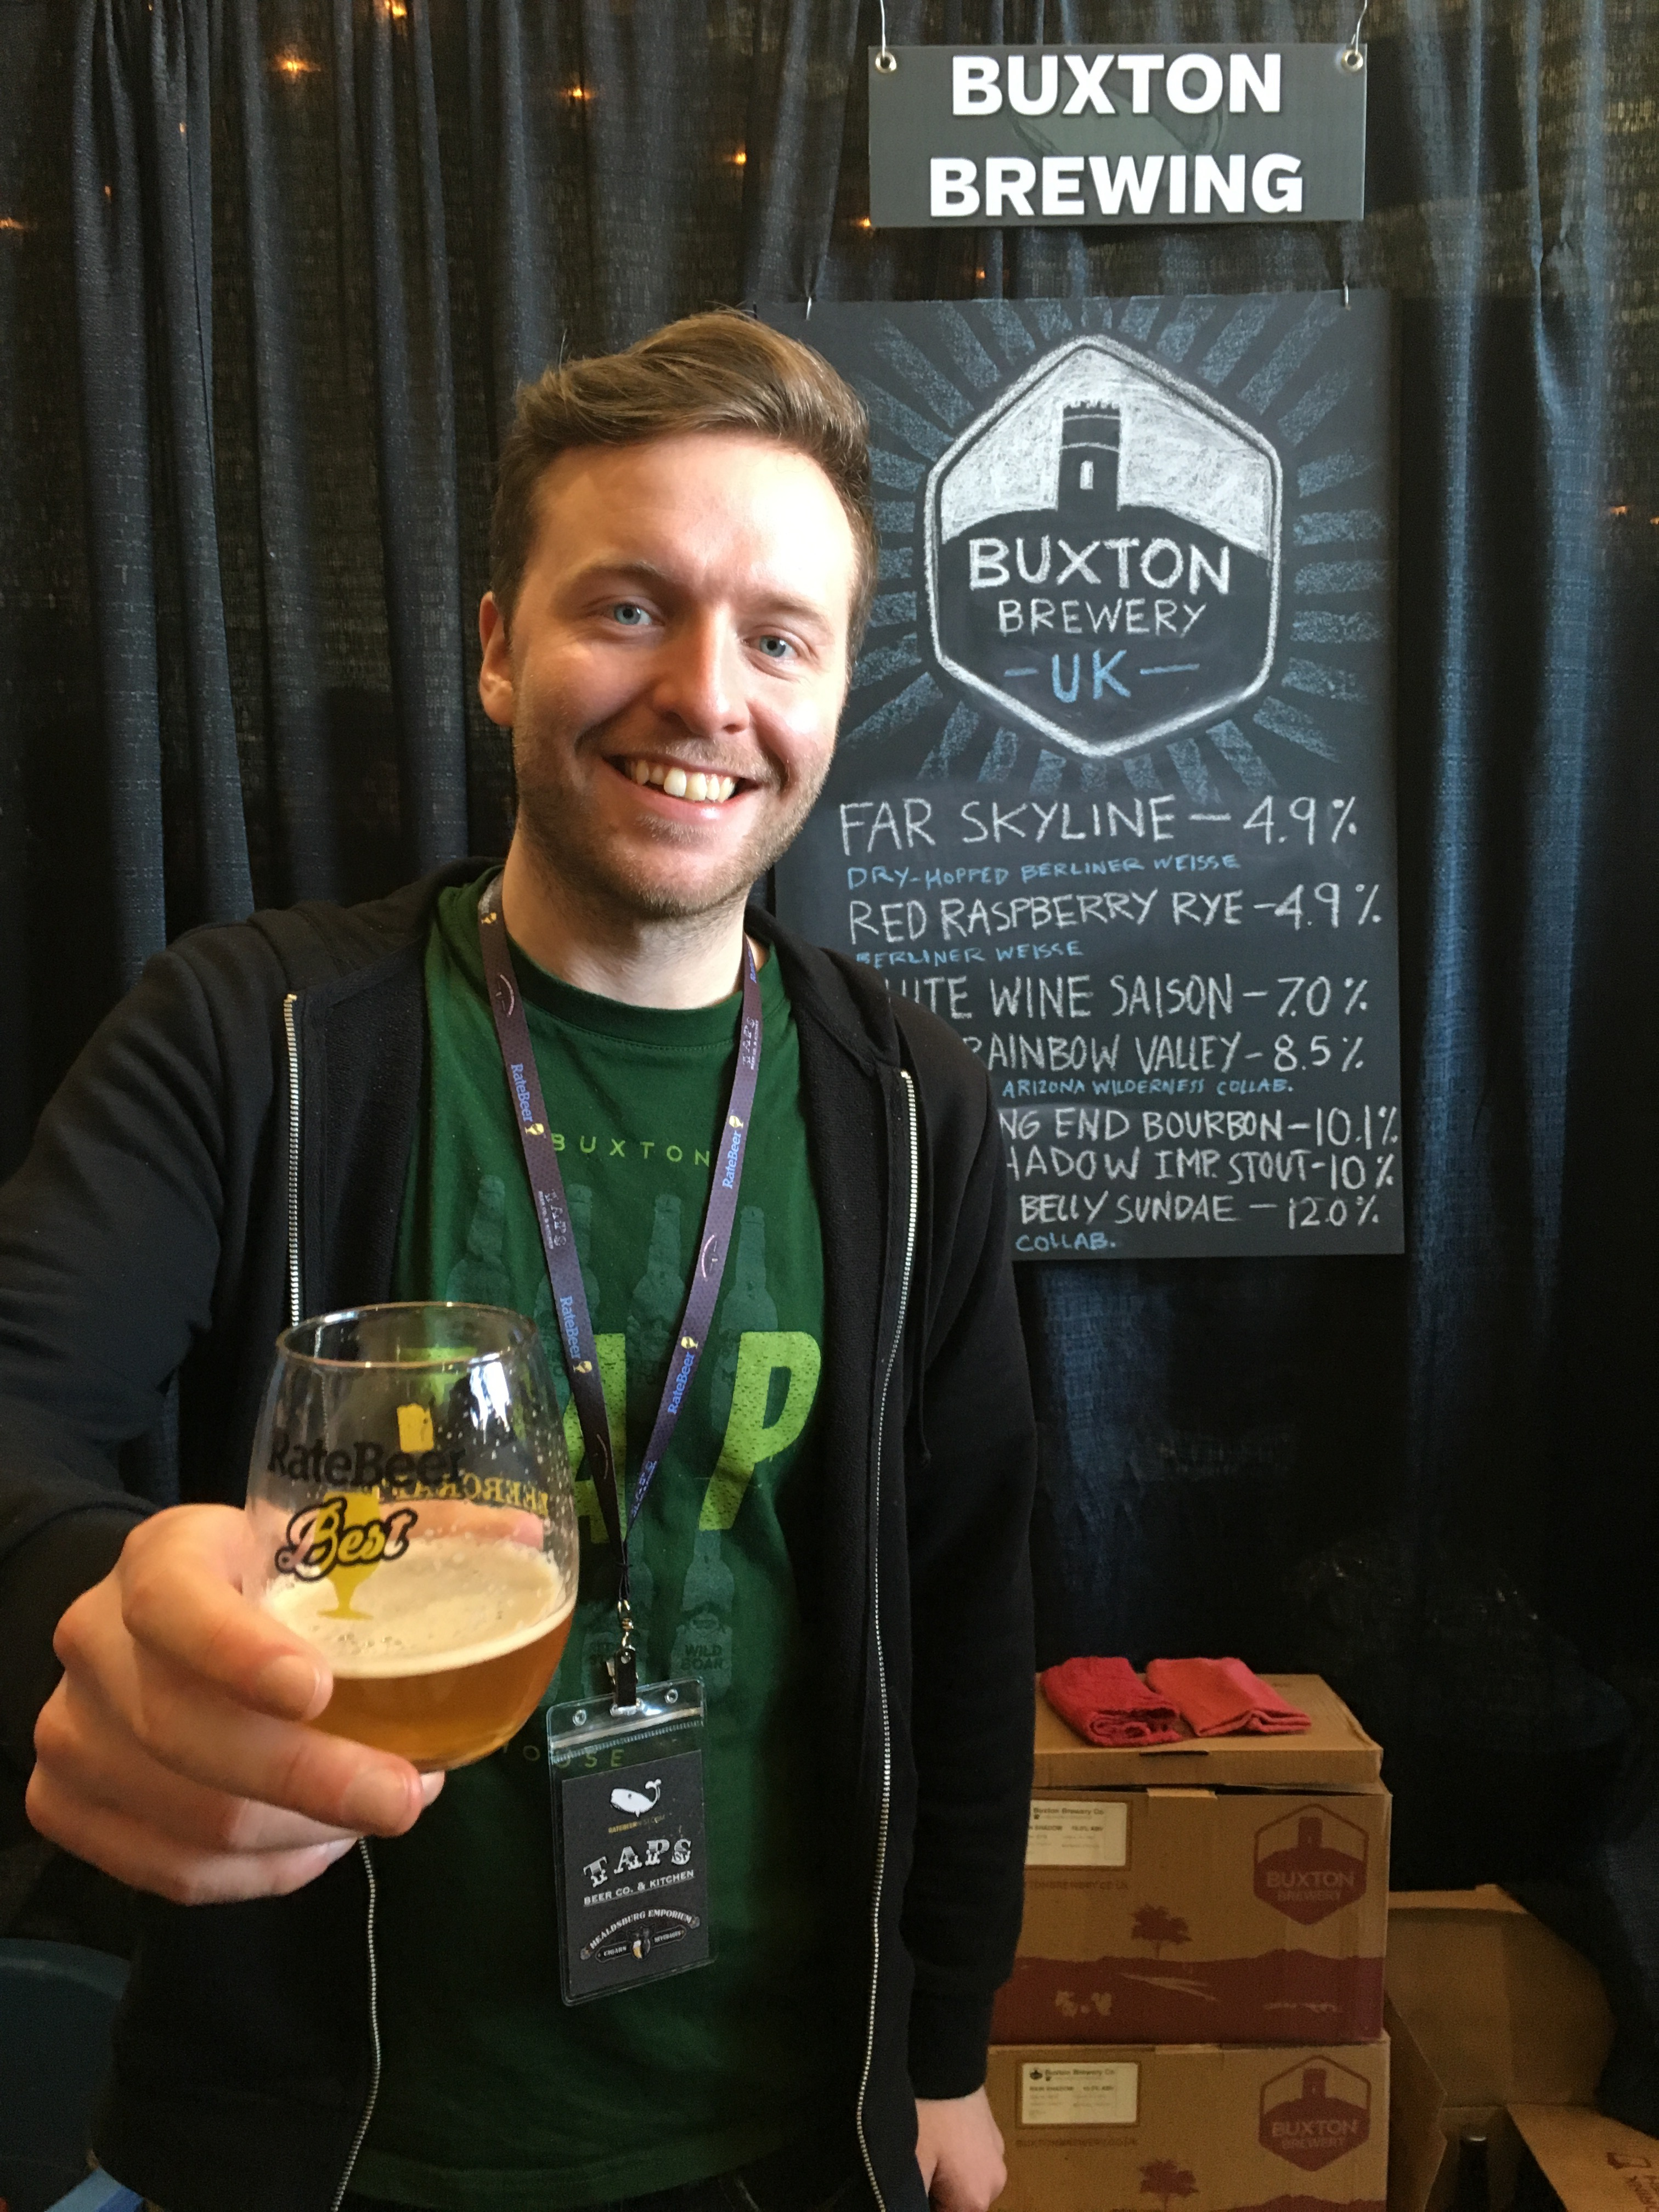 Buxton Brewing at 2016 RateBeer Best Festival.